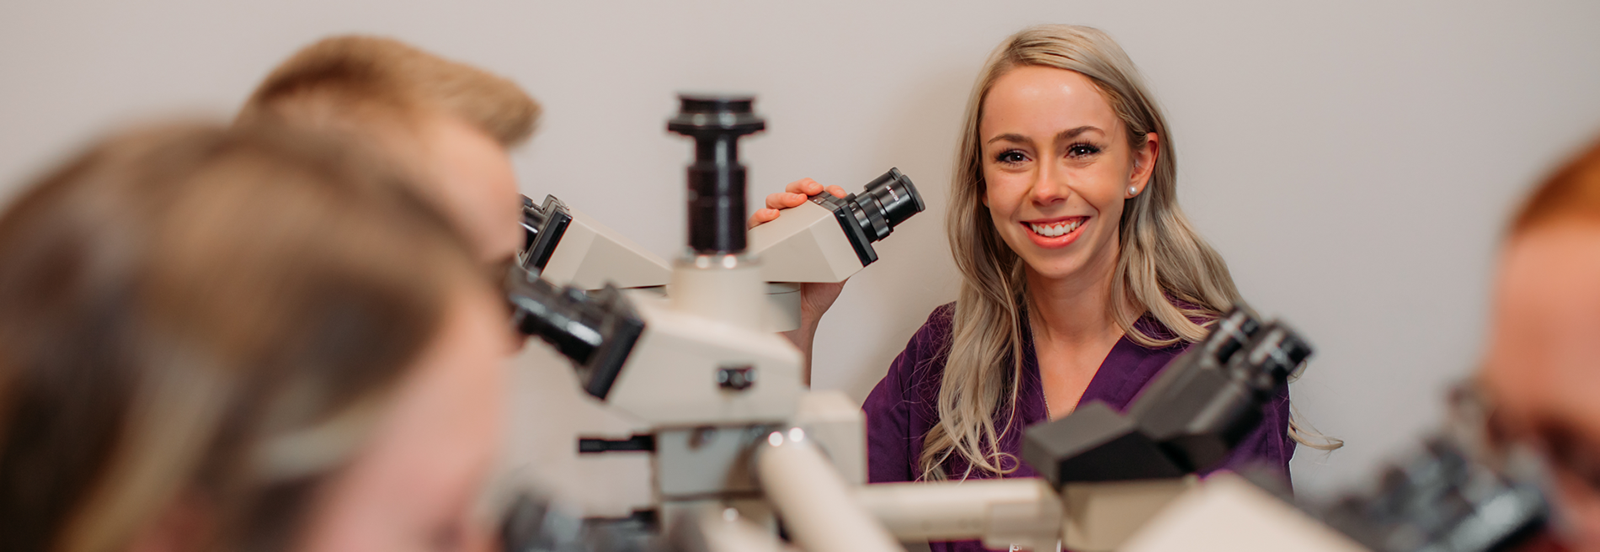 Mercy College student smiling with microscope